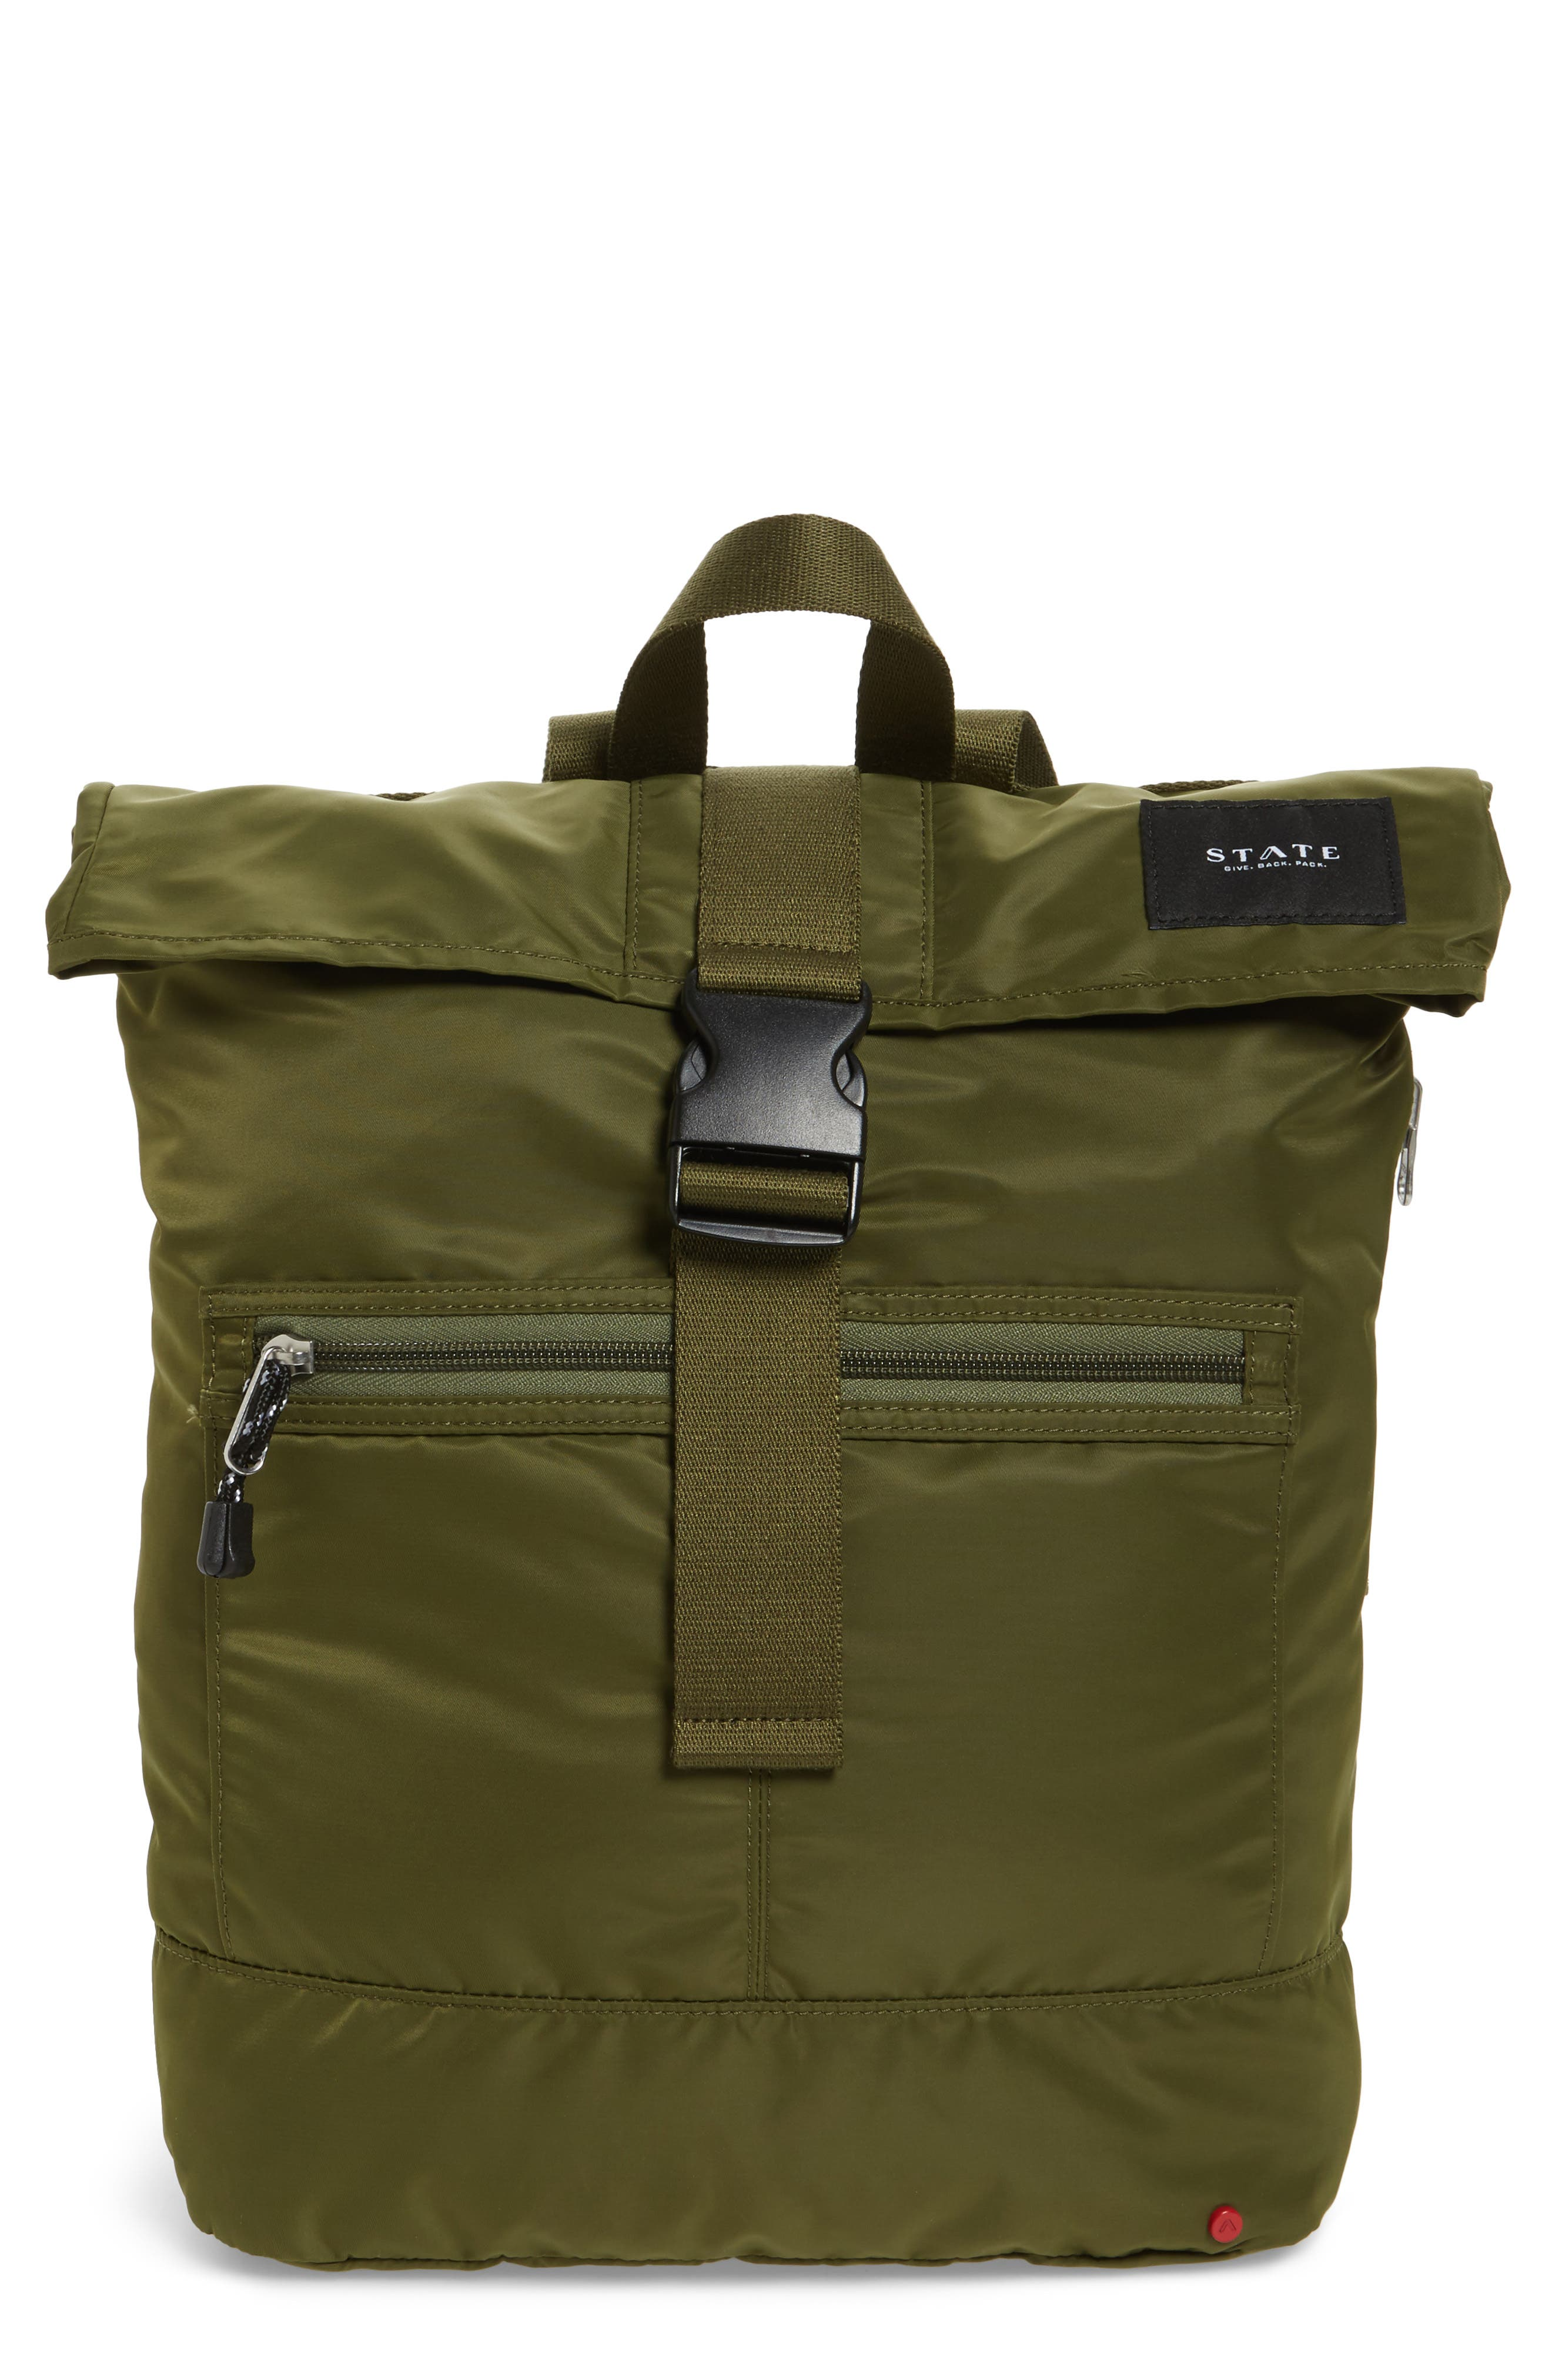 STATE BAGS Bond Heights Nylon Backpack